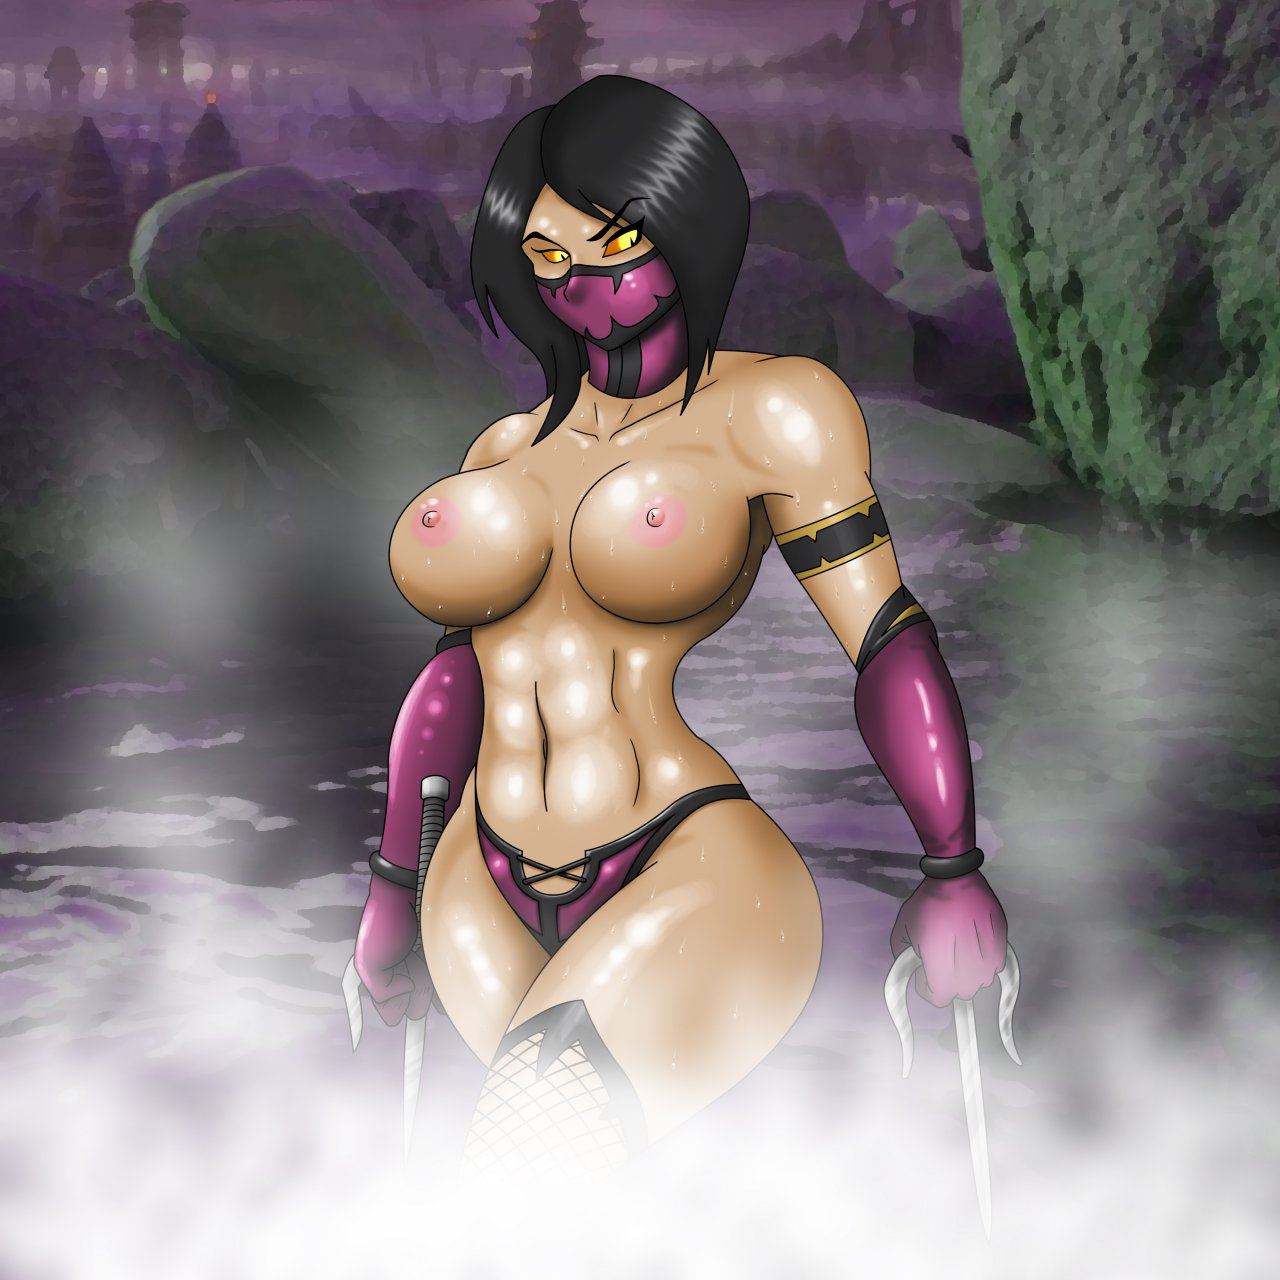 Mortal kombat naked boobs porncraft pic